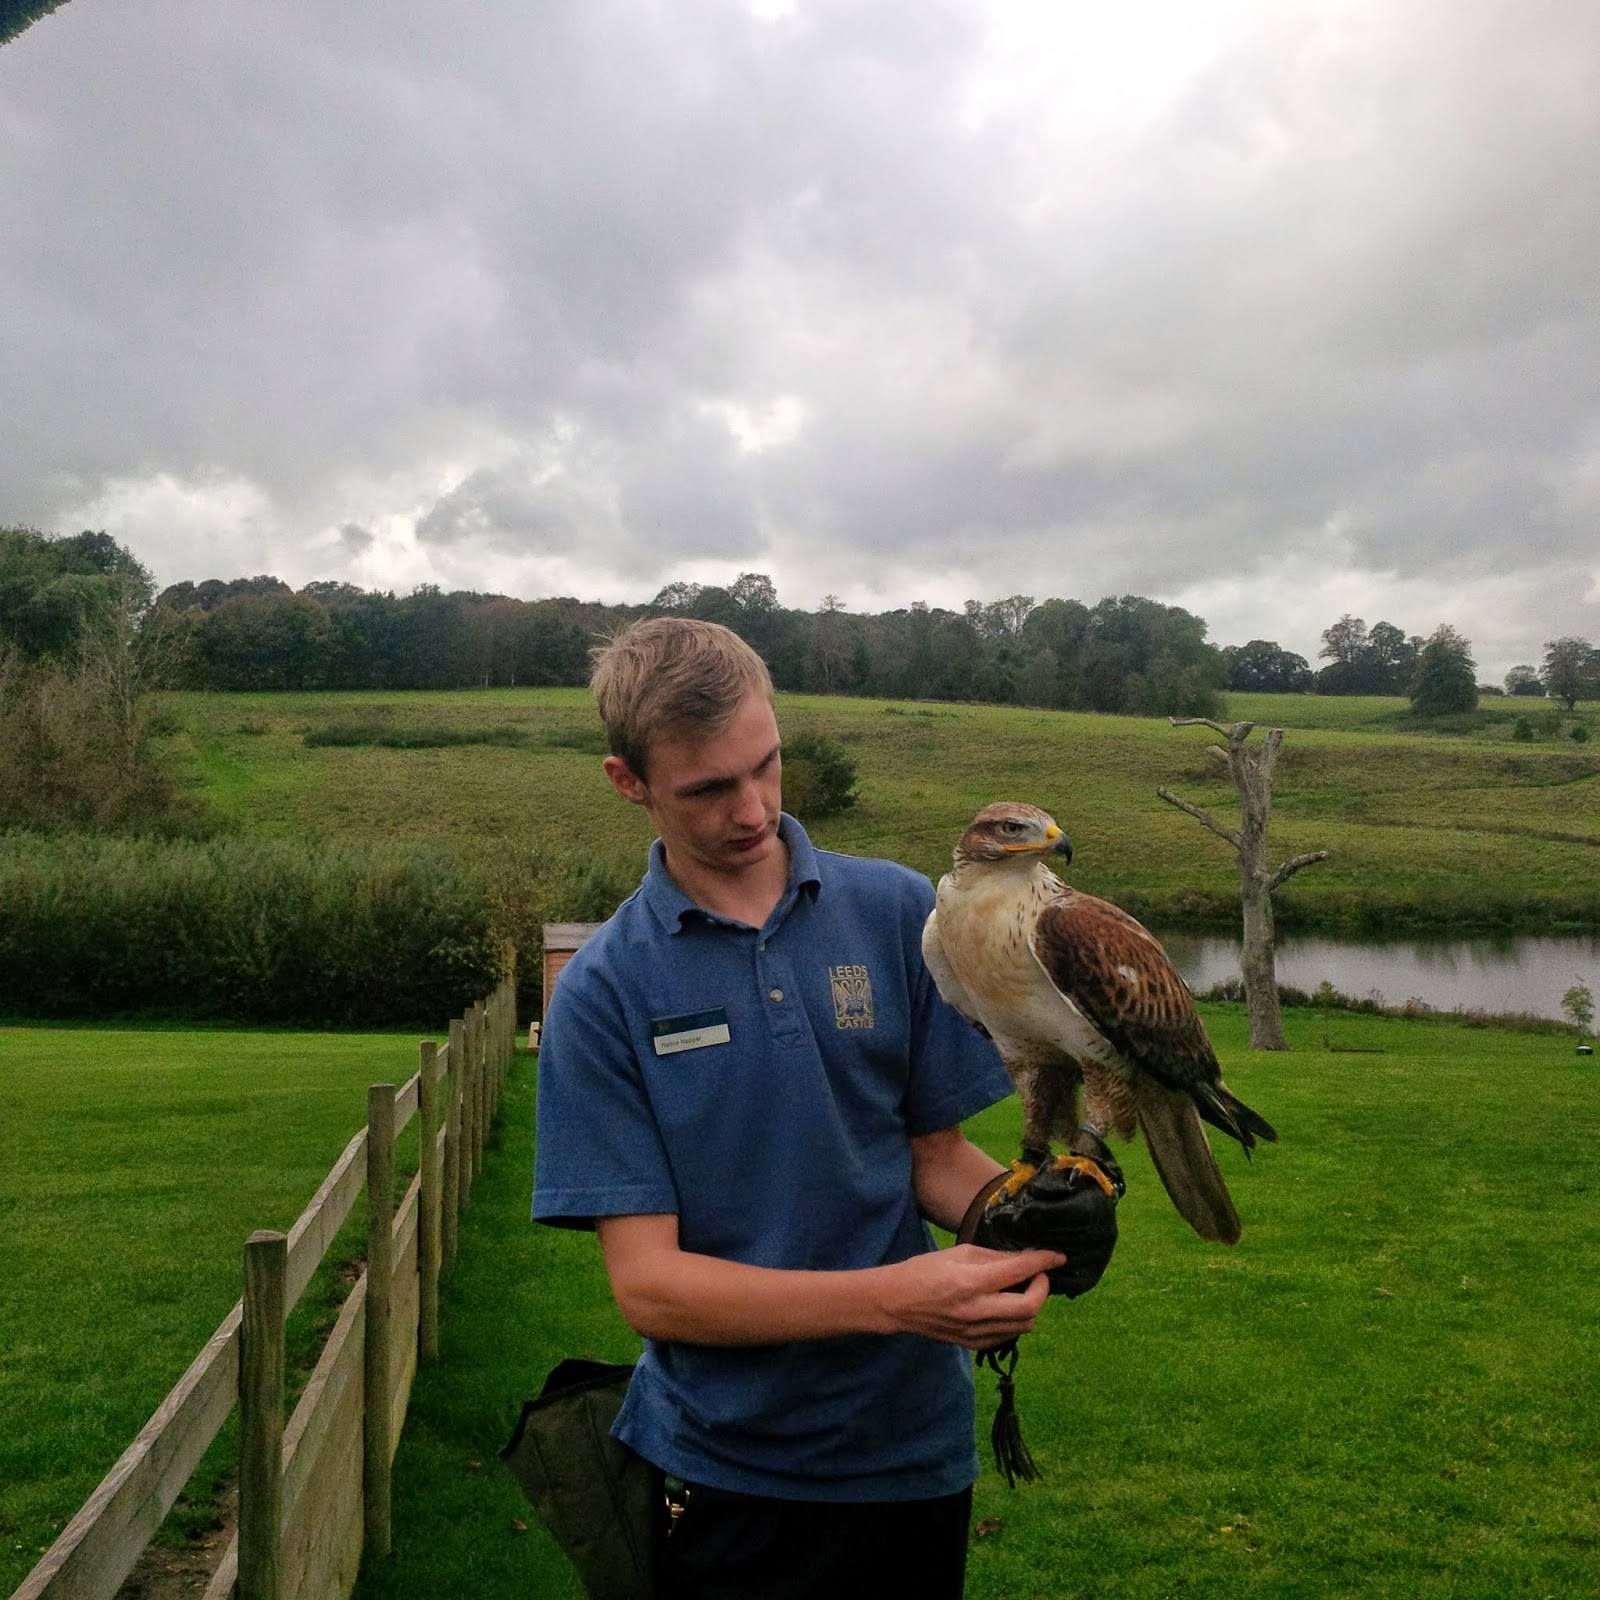 The ferruginous buzzard and his handler at Leeds Castle